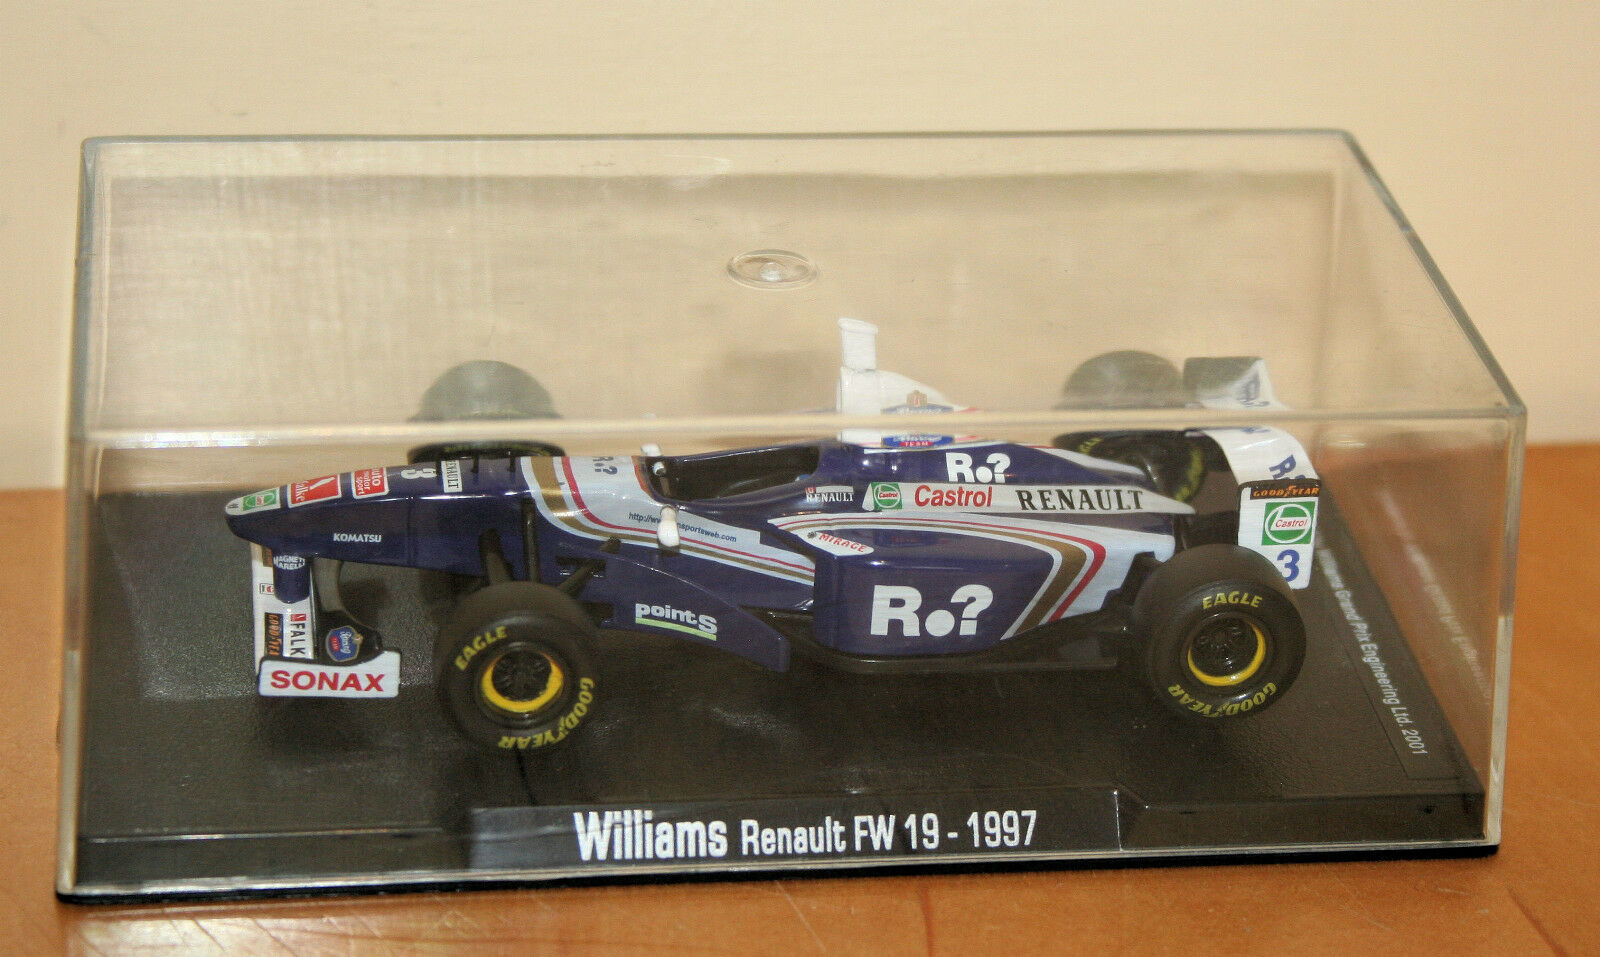 RBA Collectibles 1997 Willams Willams Willams Renault FW19 Mint Condition Boxed 007553